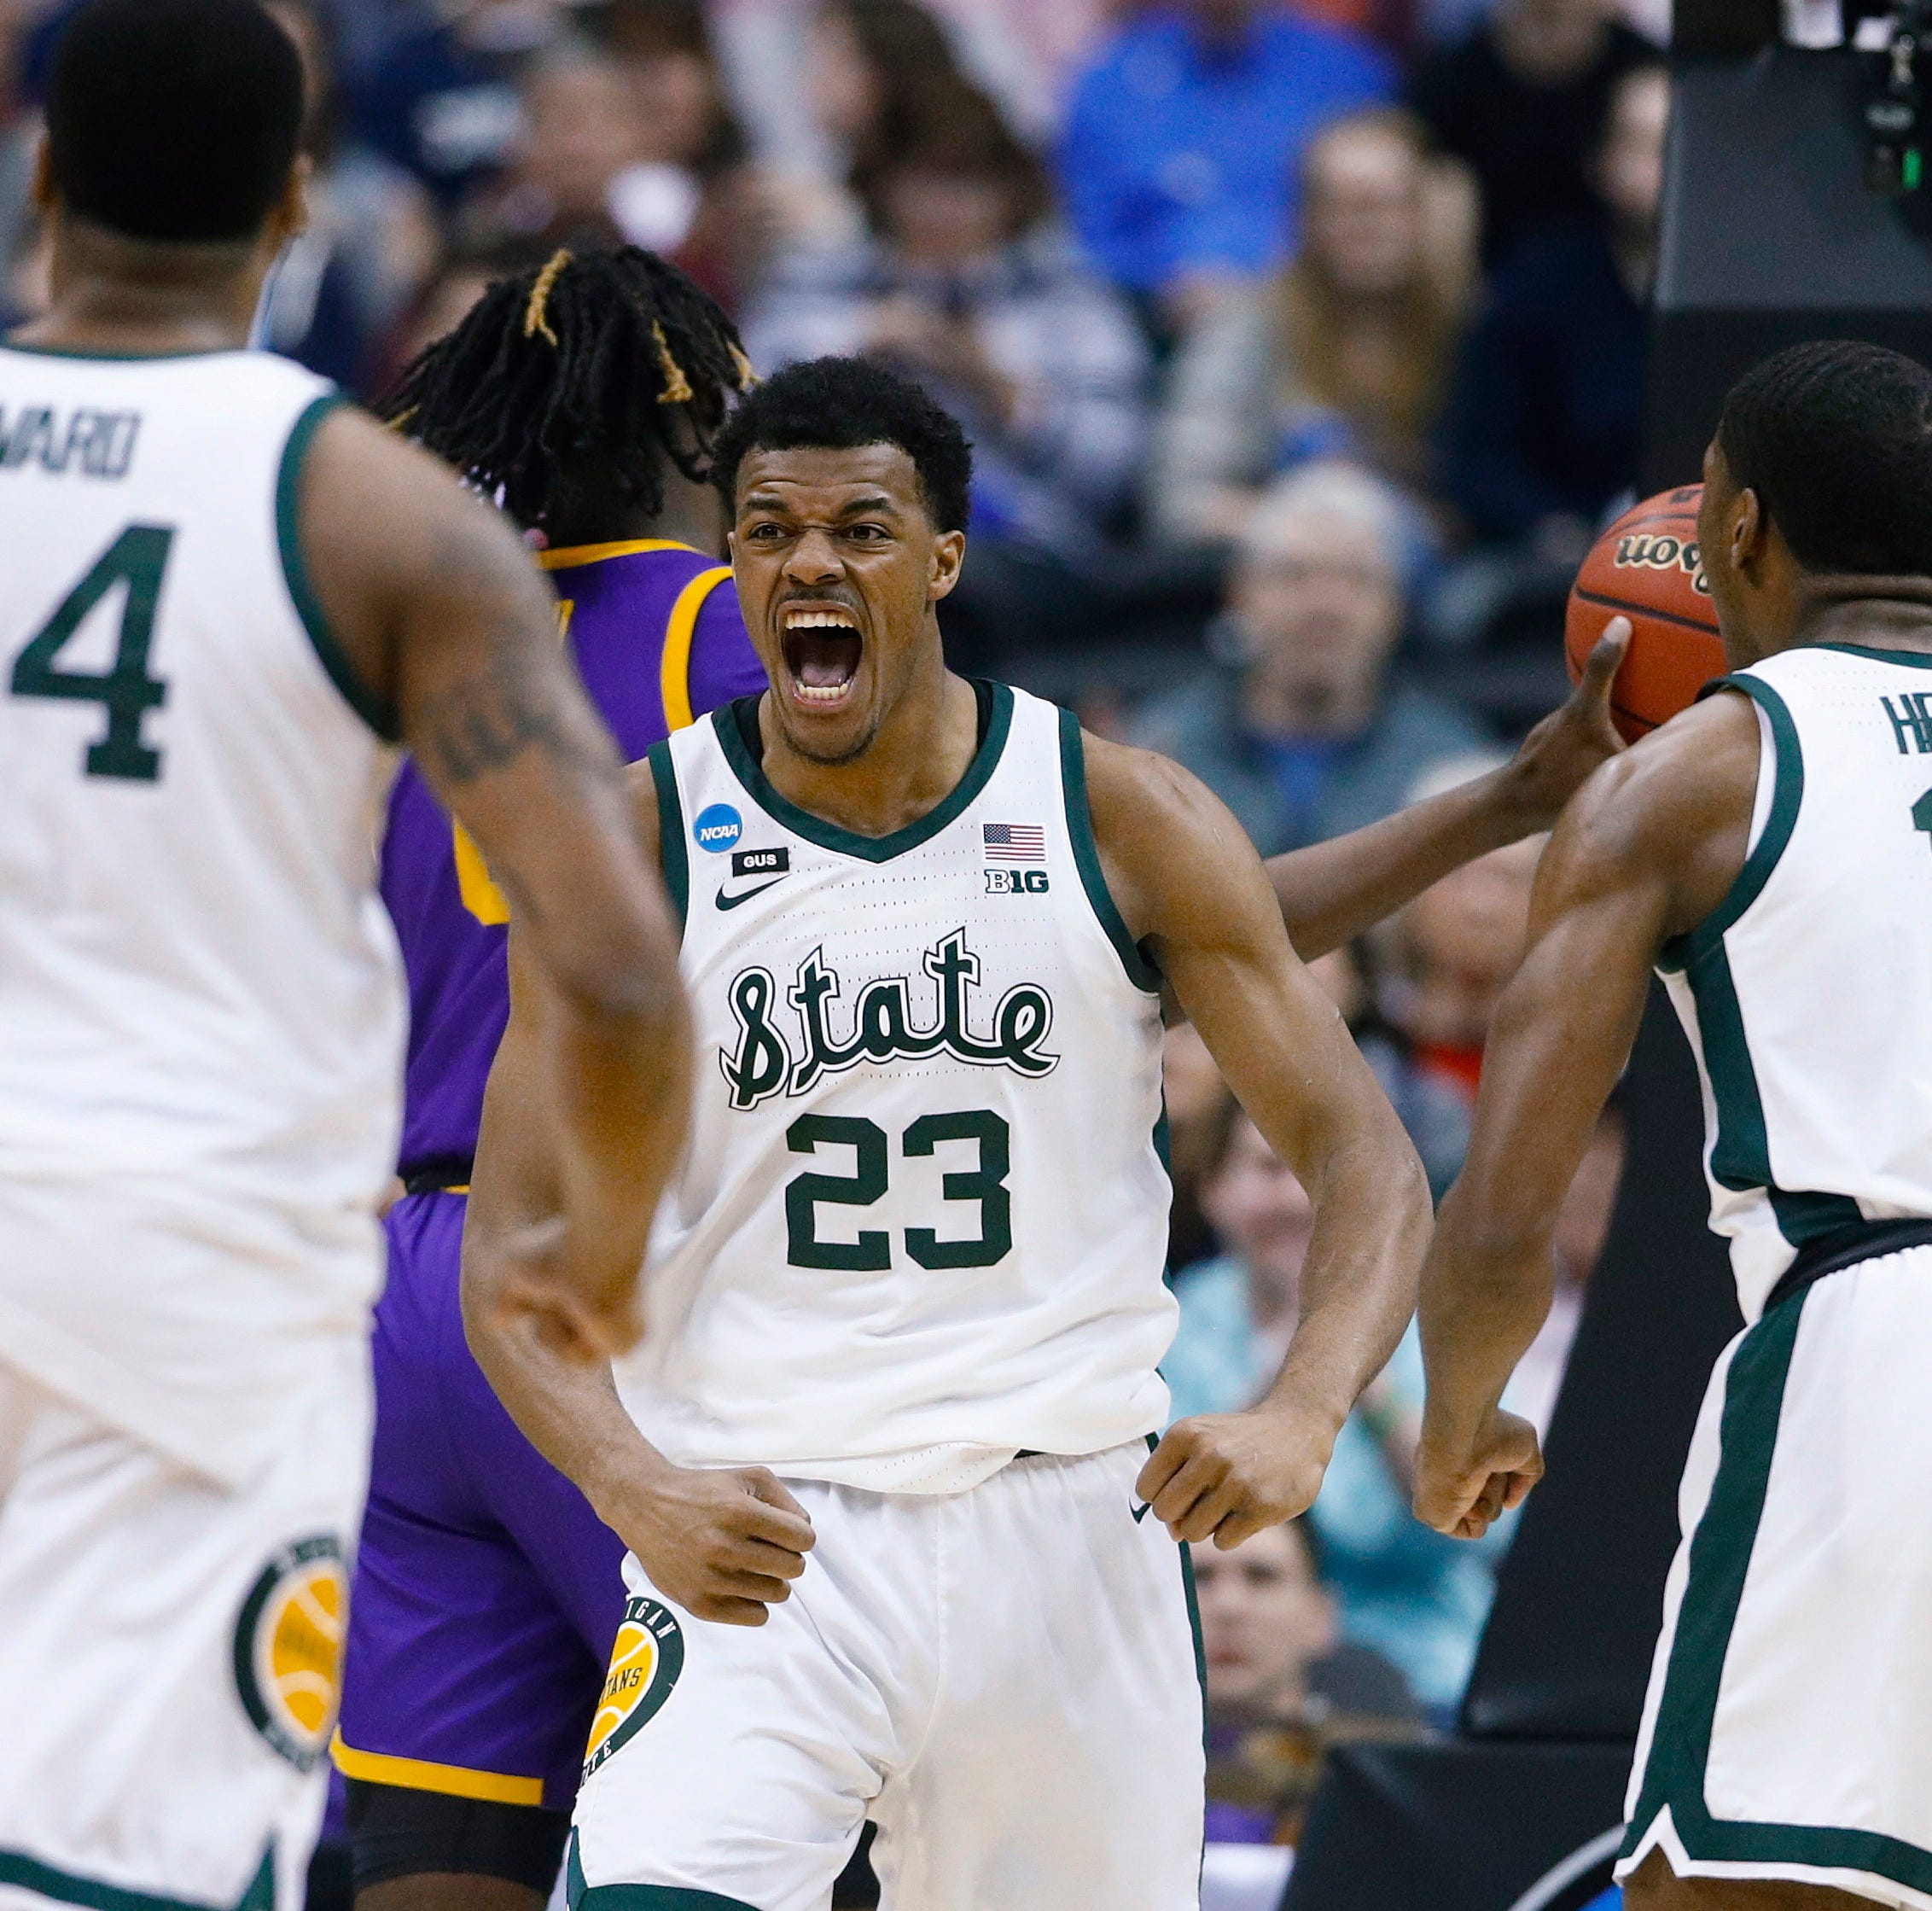 NCAA Tournament 2019: See Michigan State basketball arrive at the arena to face Duke in the Elite 8